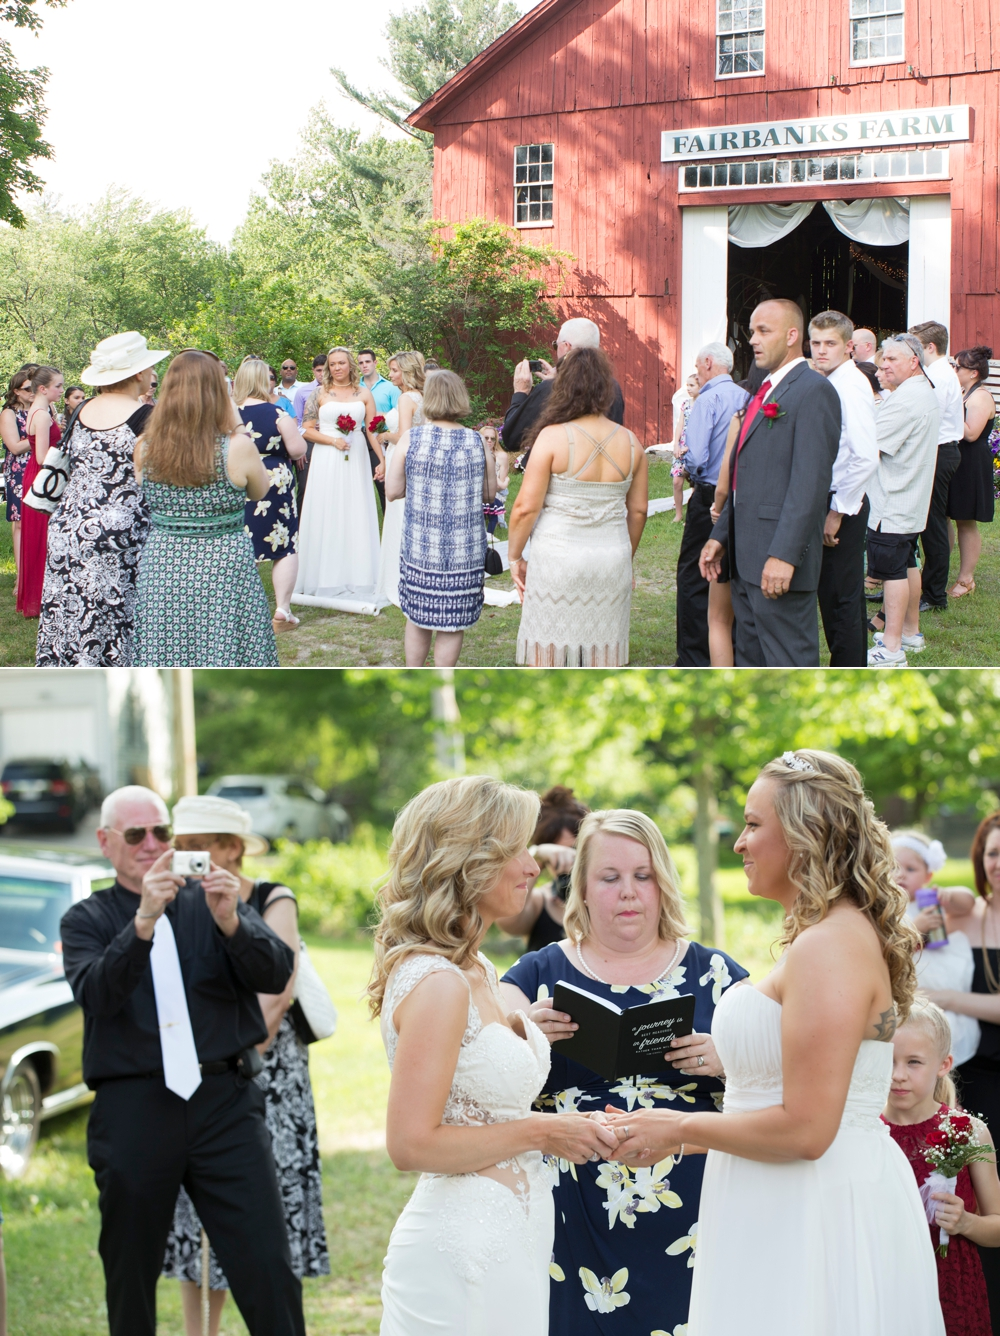 FairbanksFarm_Wedding_Jill&Lori_0013.jpg